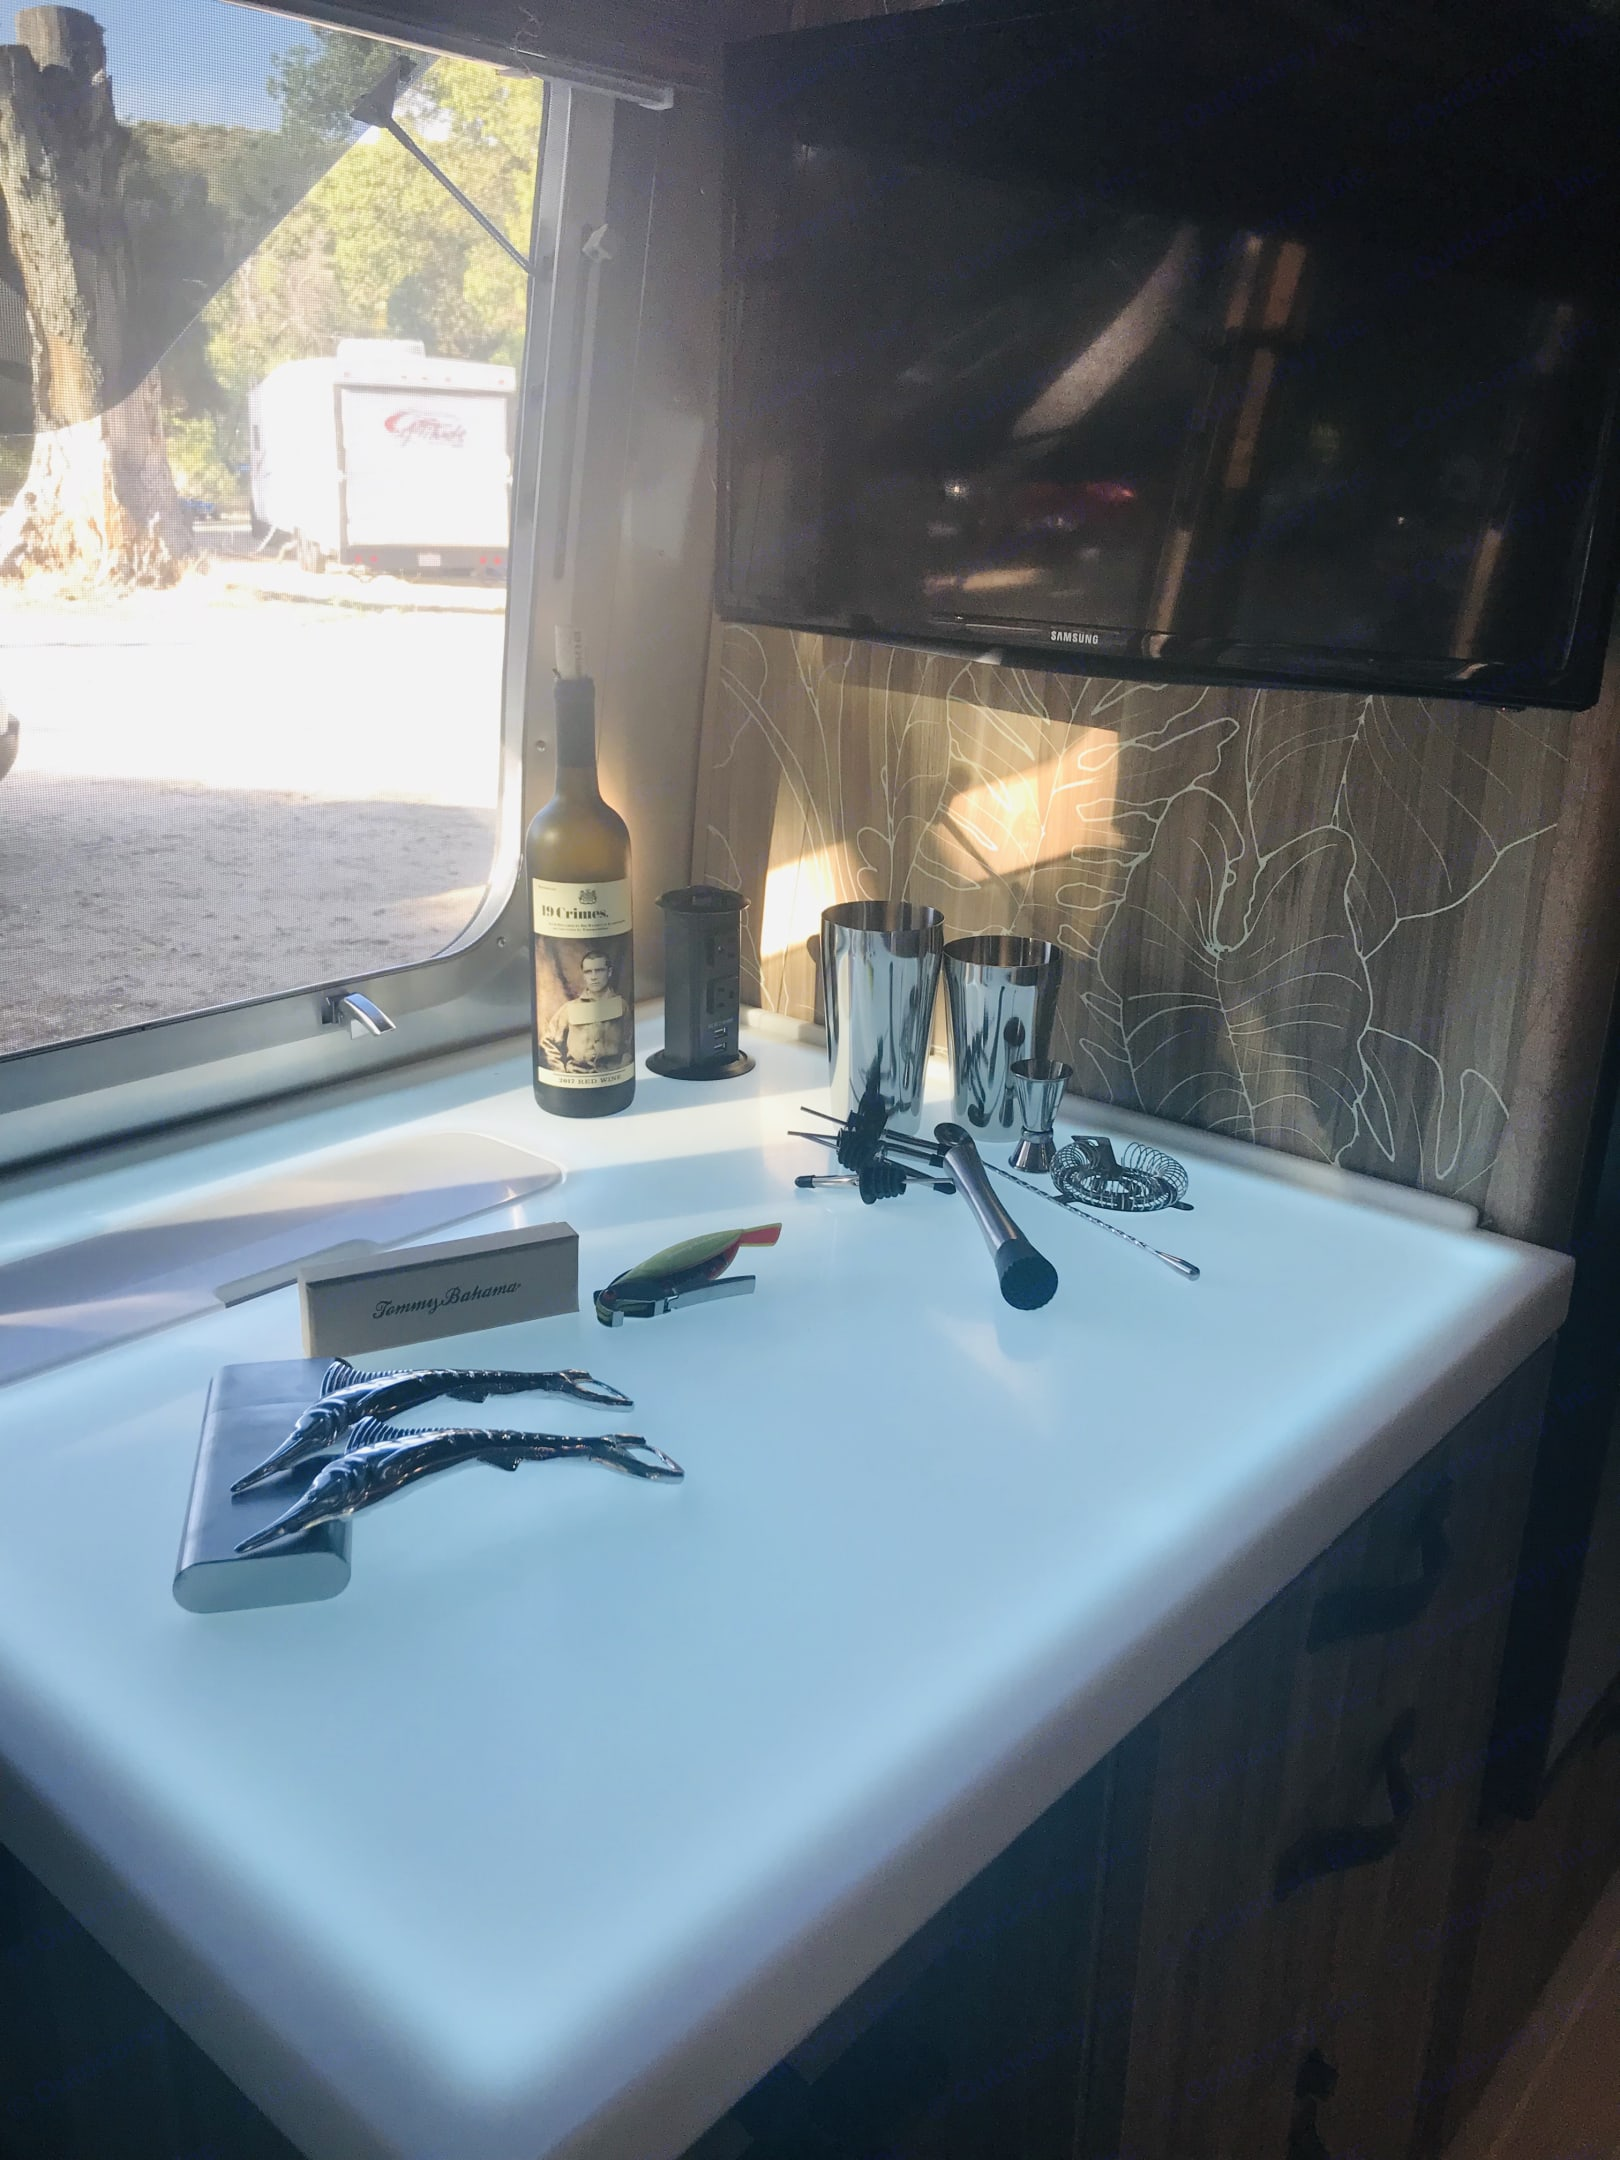 Light up bar with ice maker and Tommy Bahama bar gadgets!. Airstream Tommy Bahama Relax Edition 2019